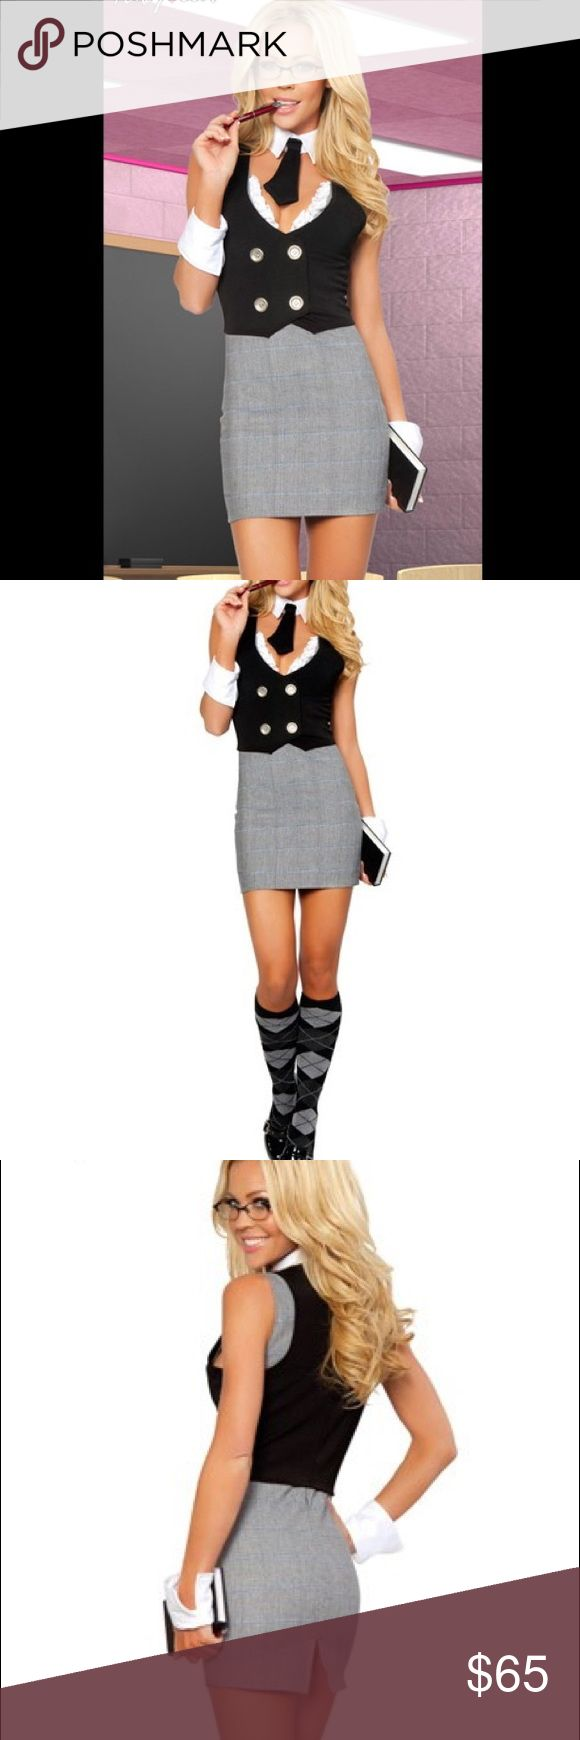 NEW Sexy Librarian Halloween Costume Small Medium Sexy librarian costume lingerie by ROMA. Unworn in original packaging. Includes dress, vest, tie, cuffs and also the matching knee socks which are sold separately . Packaging states size is small/medium roma Other